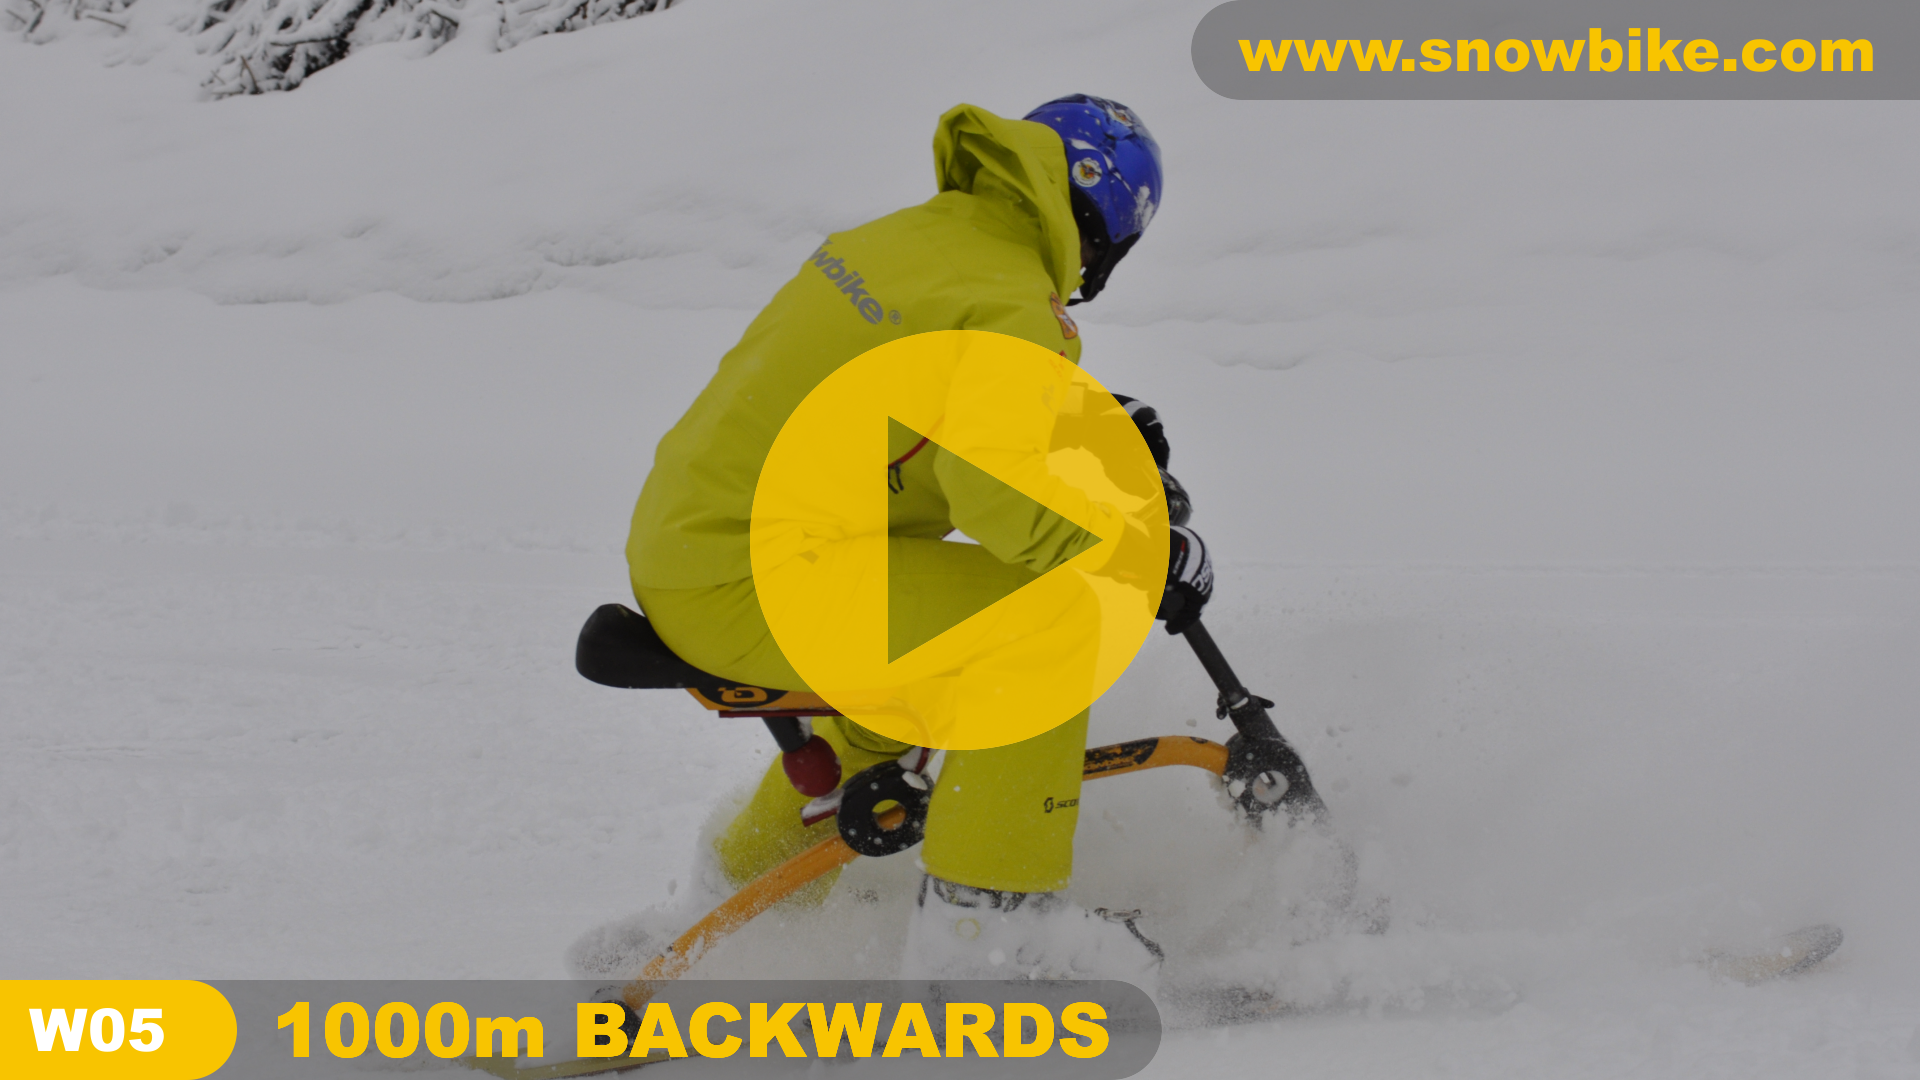 brenter-snowbike-world-record-1000m-backwards-coverC795DCA3-8650-7823-6D4C-816B09380045.png